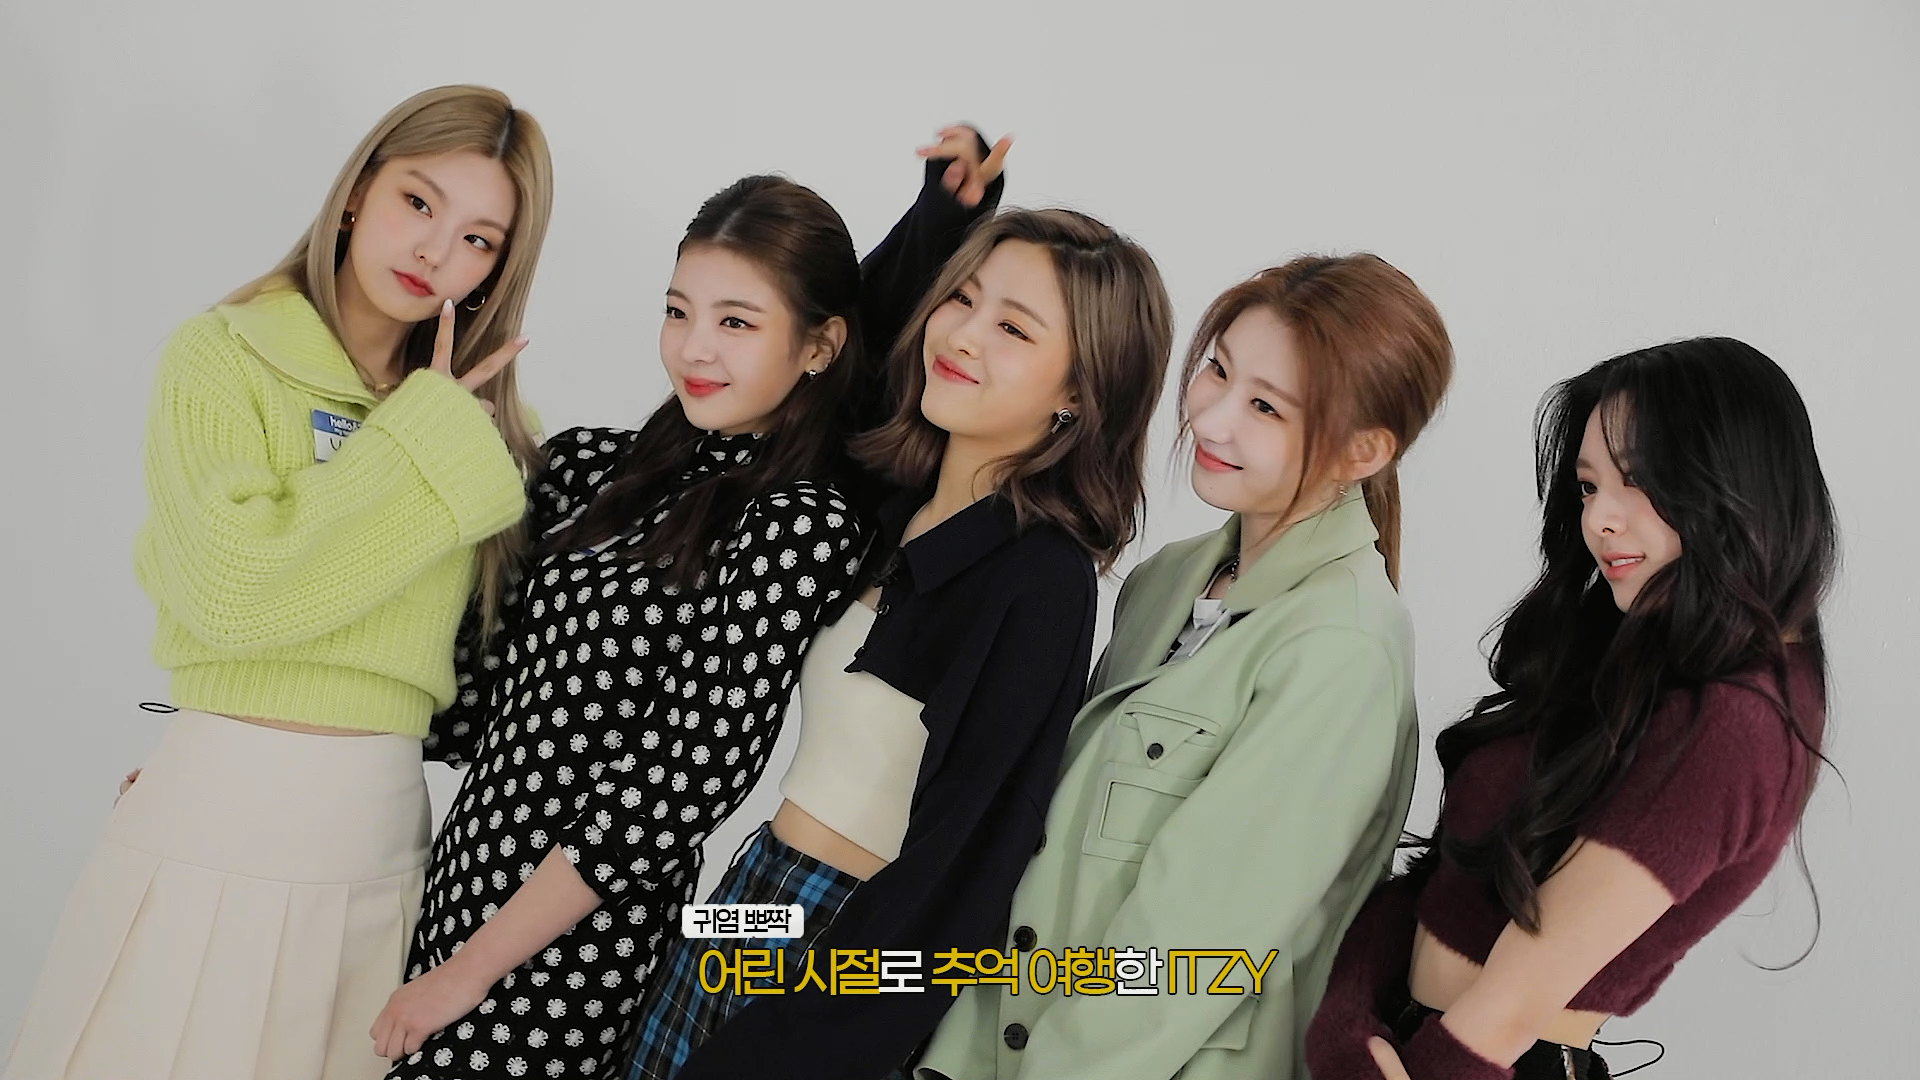 [ITZY?ITZY!(있지?있지!)] EP70. Boys and Girls랑 있지!